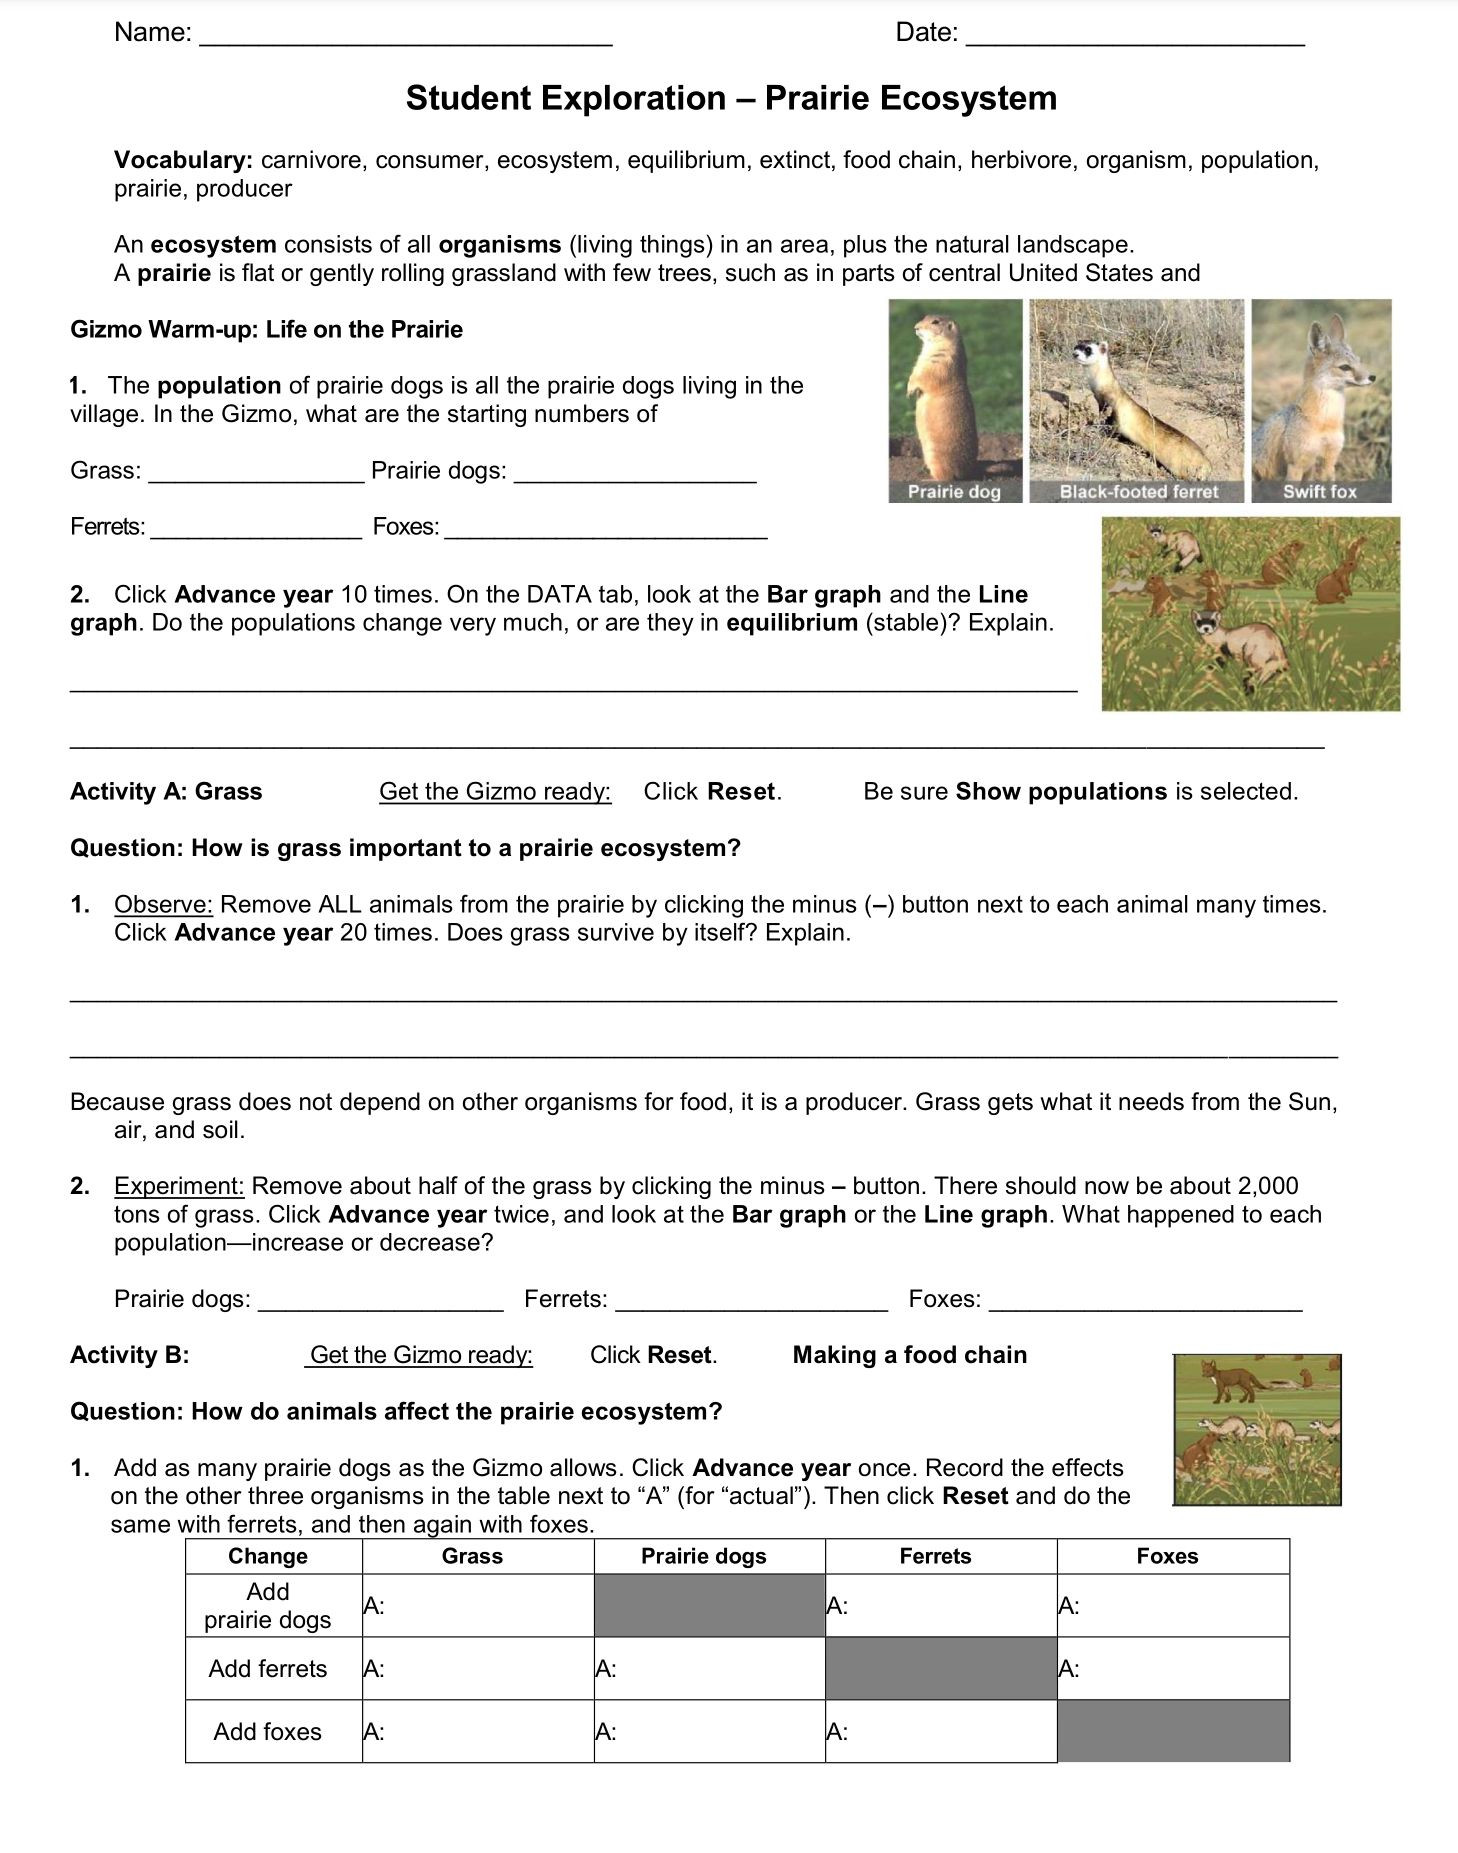 Free Printable Ecosystem Worksheets Ecosystem Student Exploration Worksheet Go to Explore